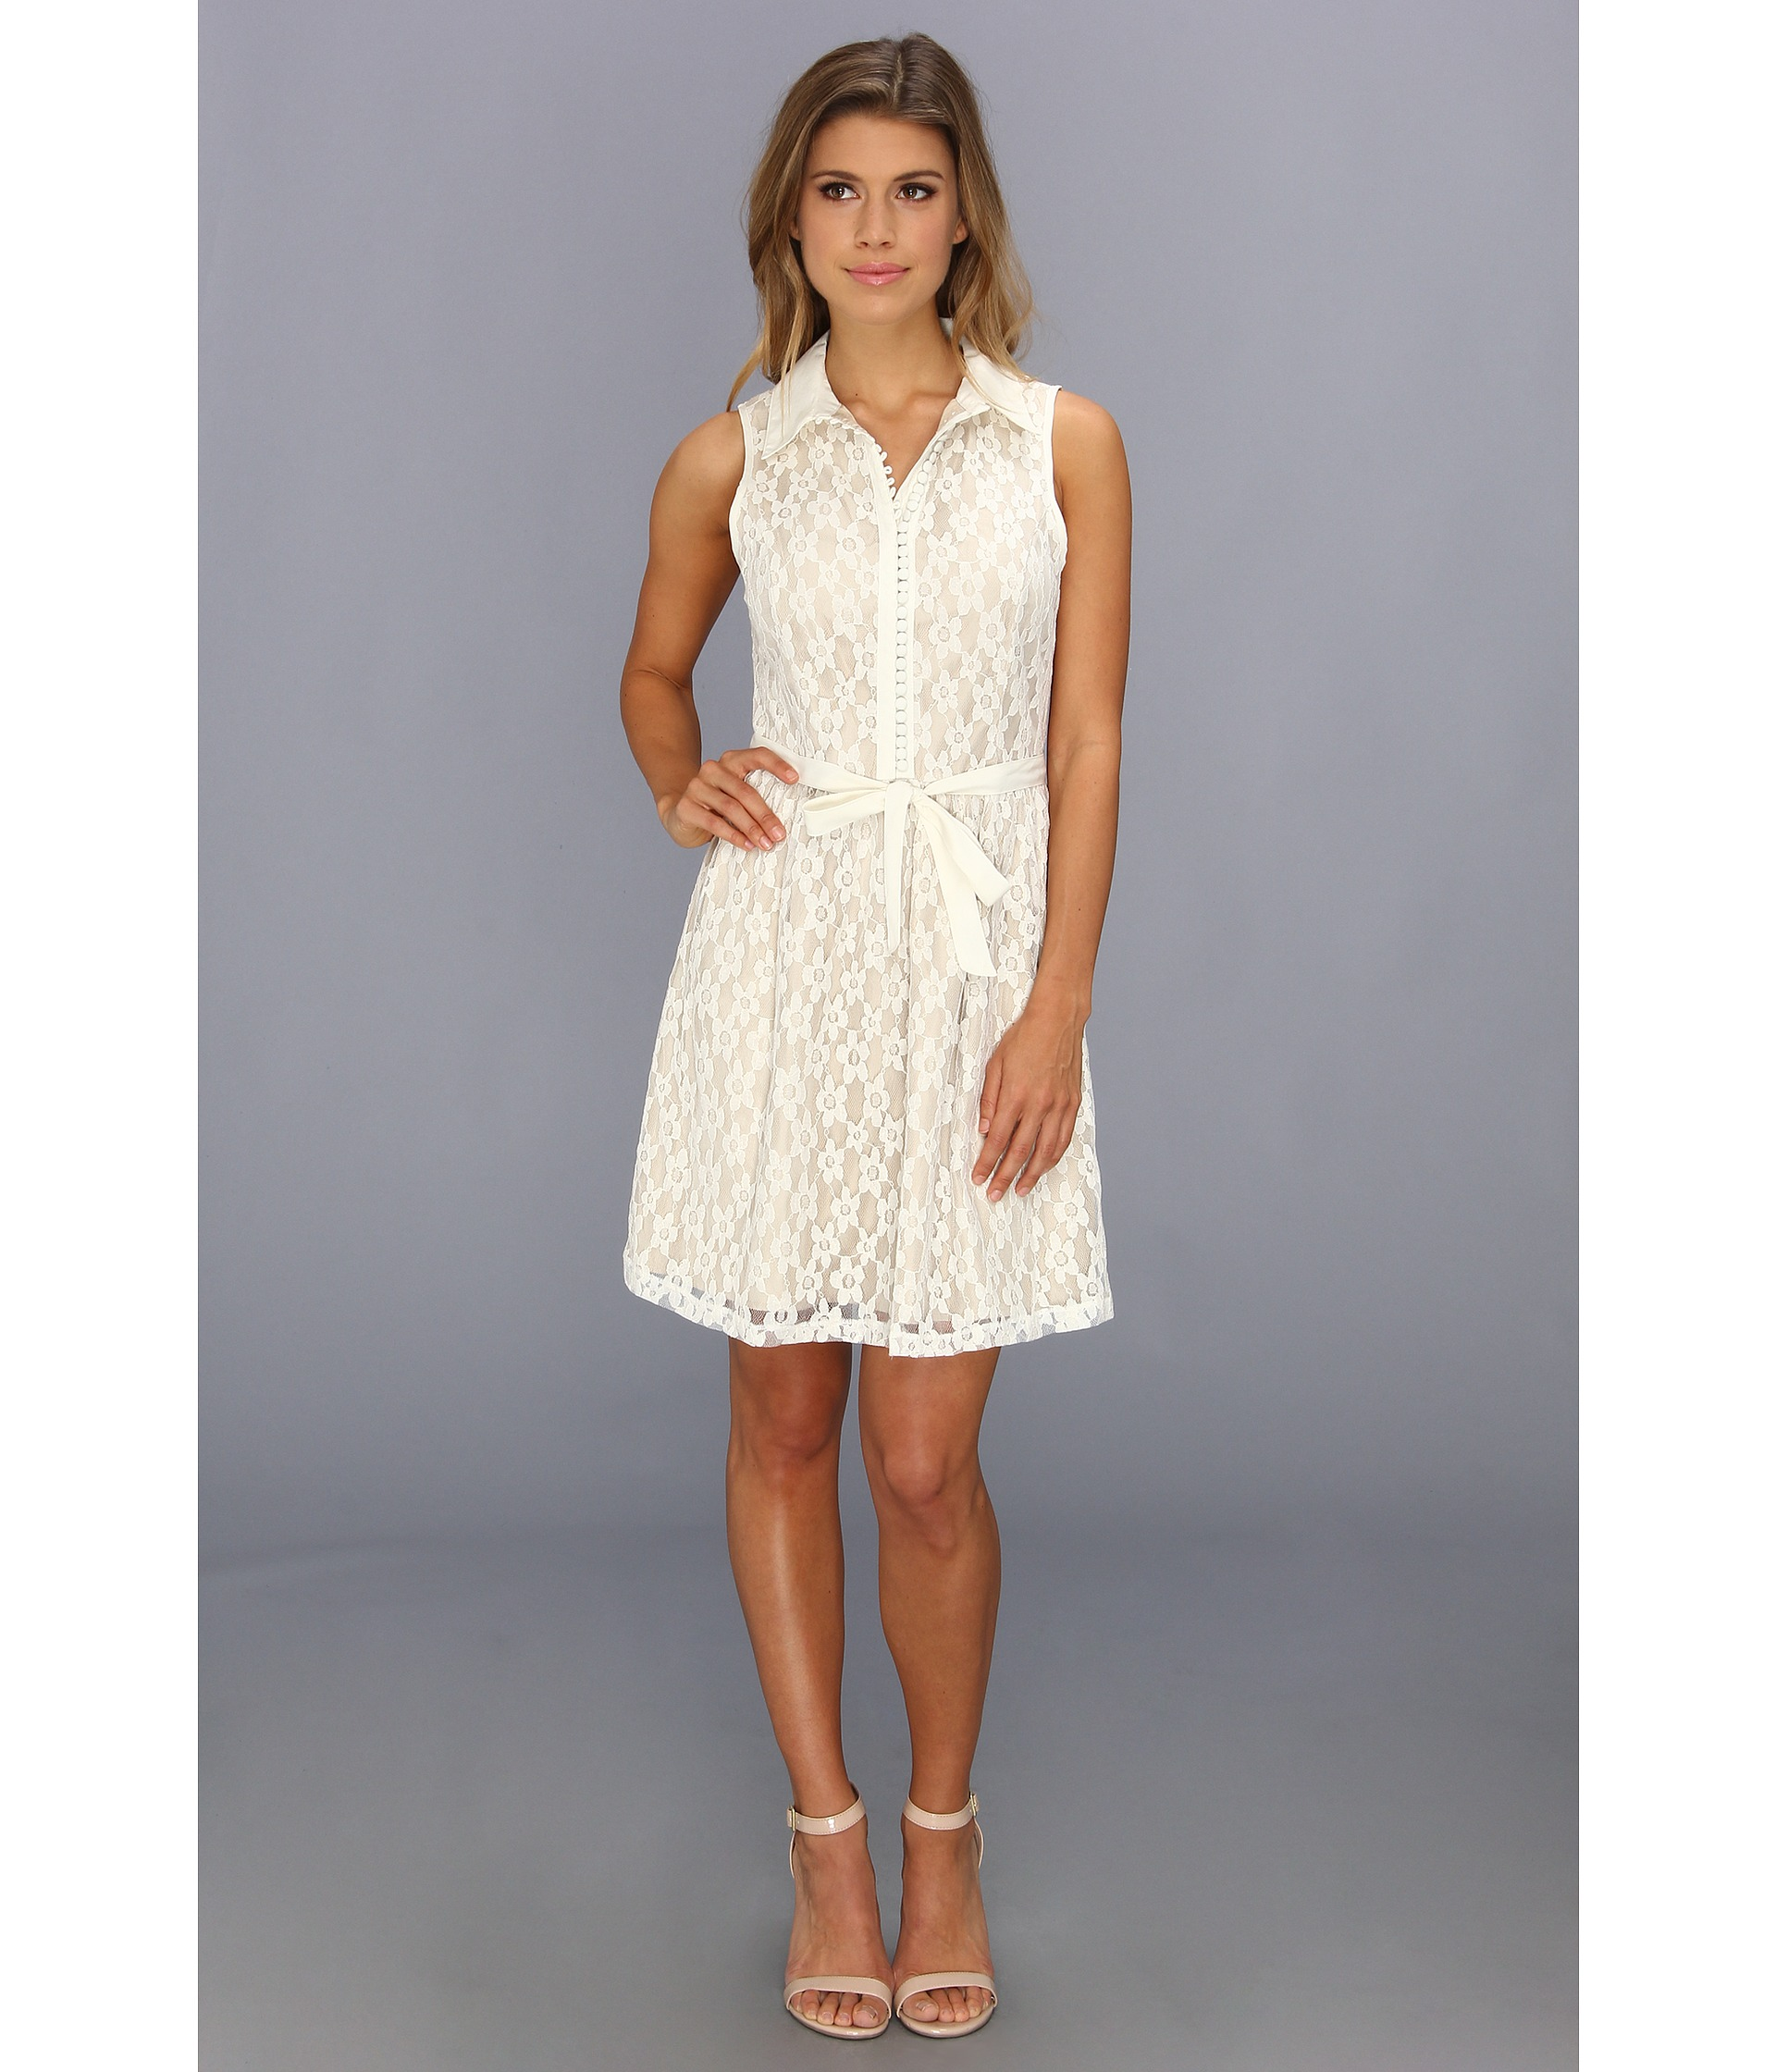 grandco sandals zappos dress